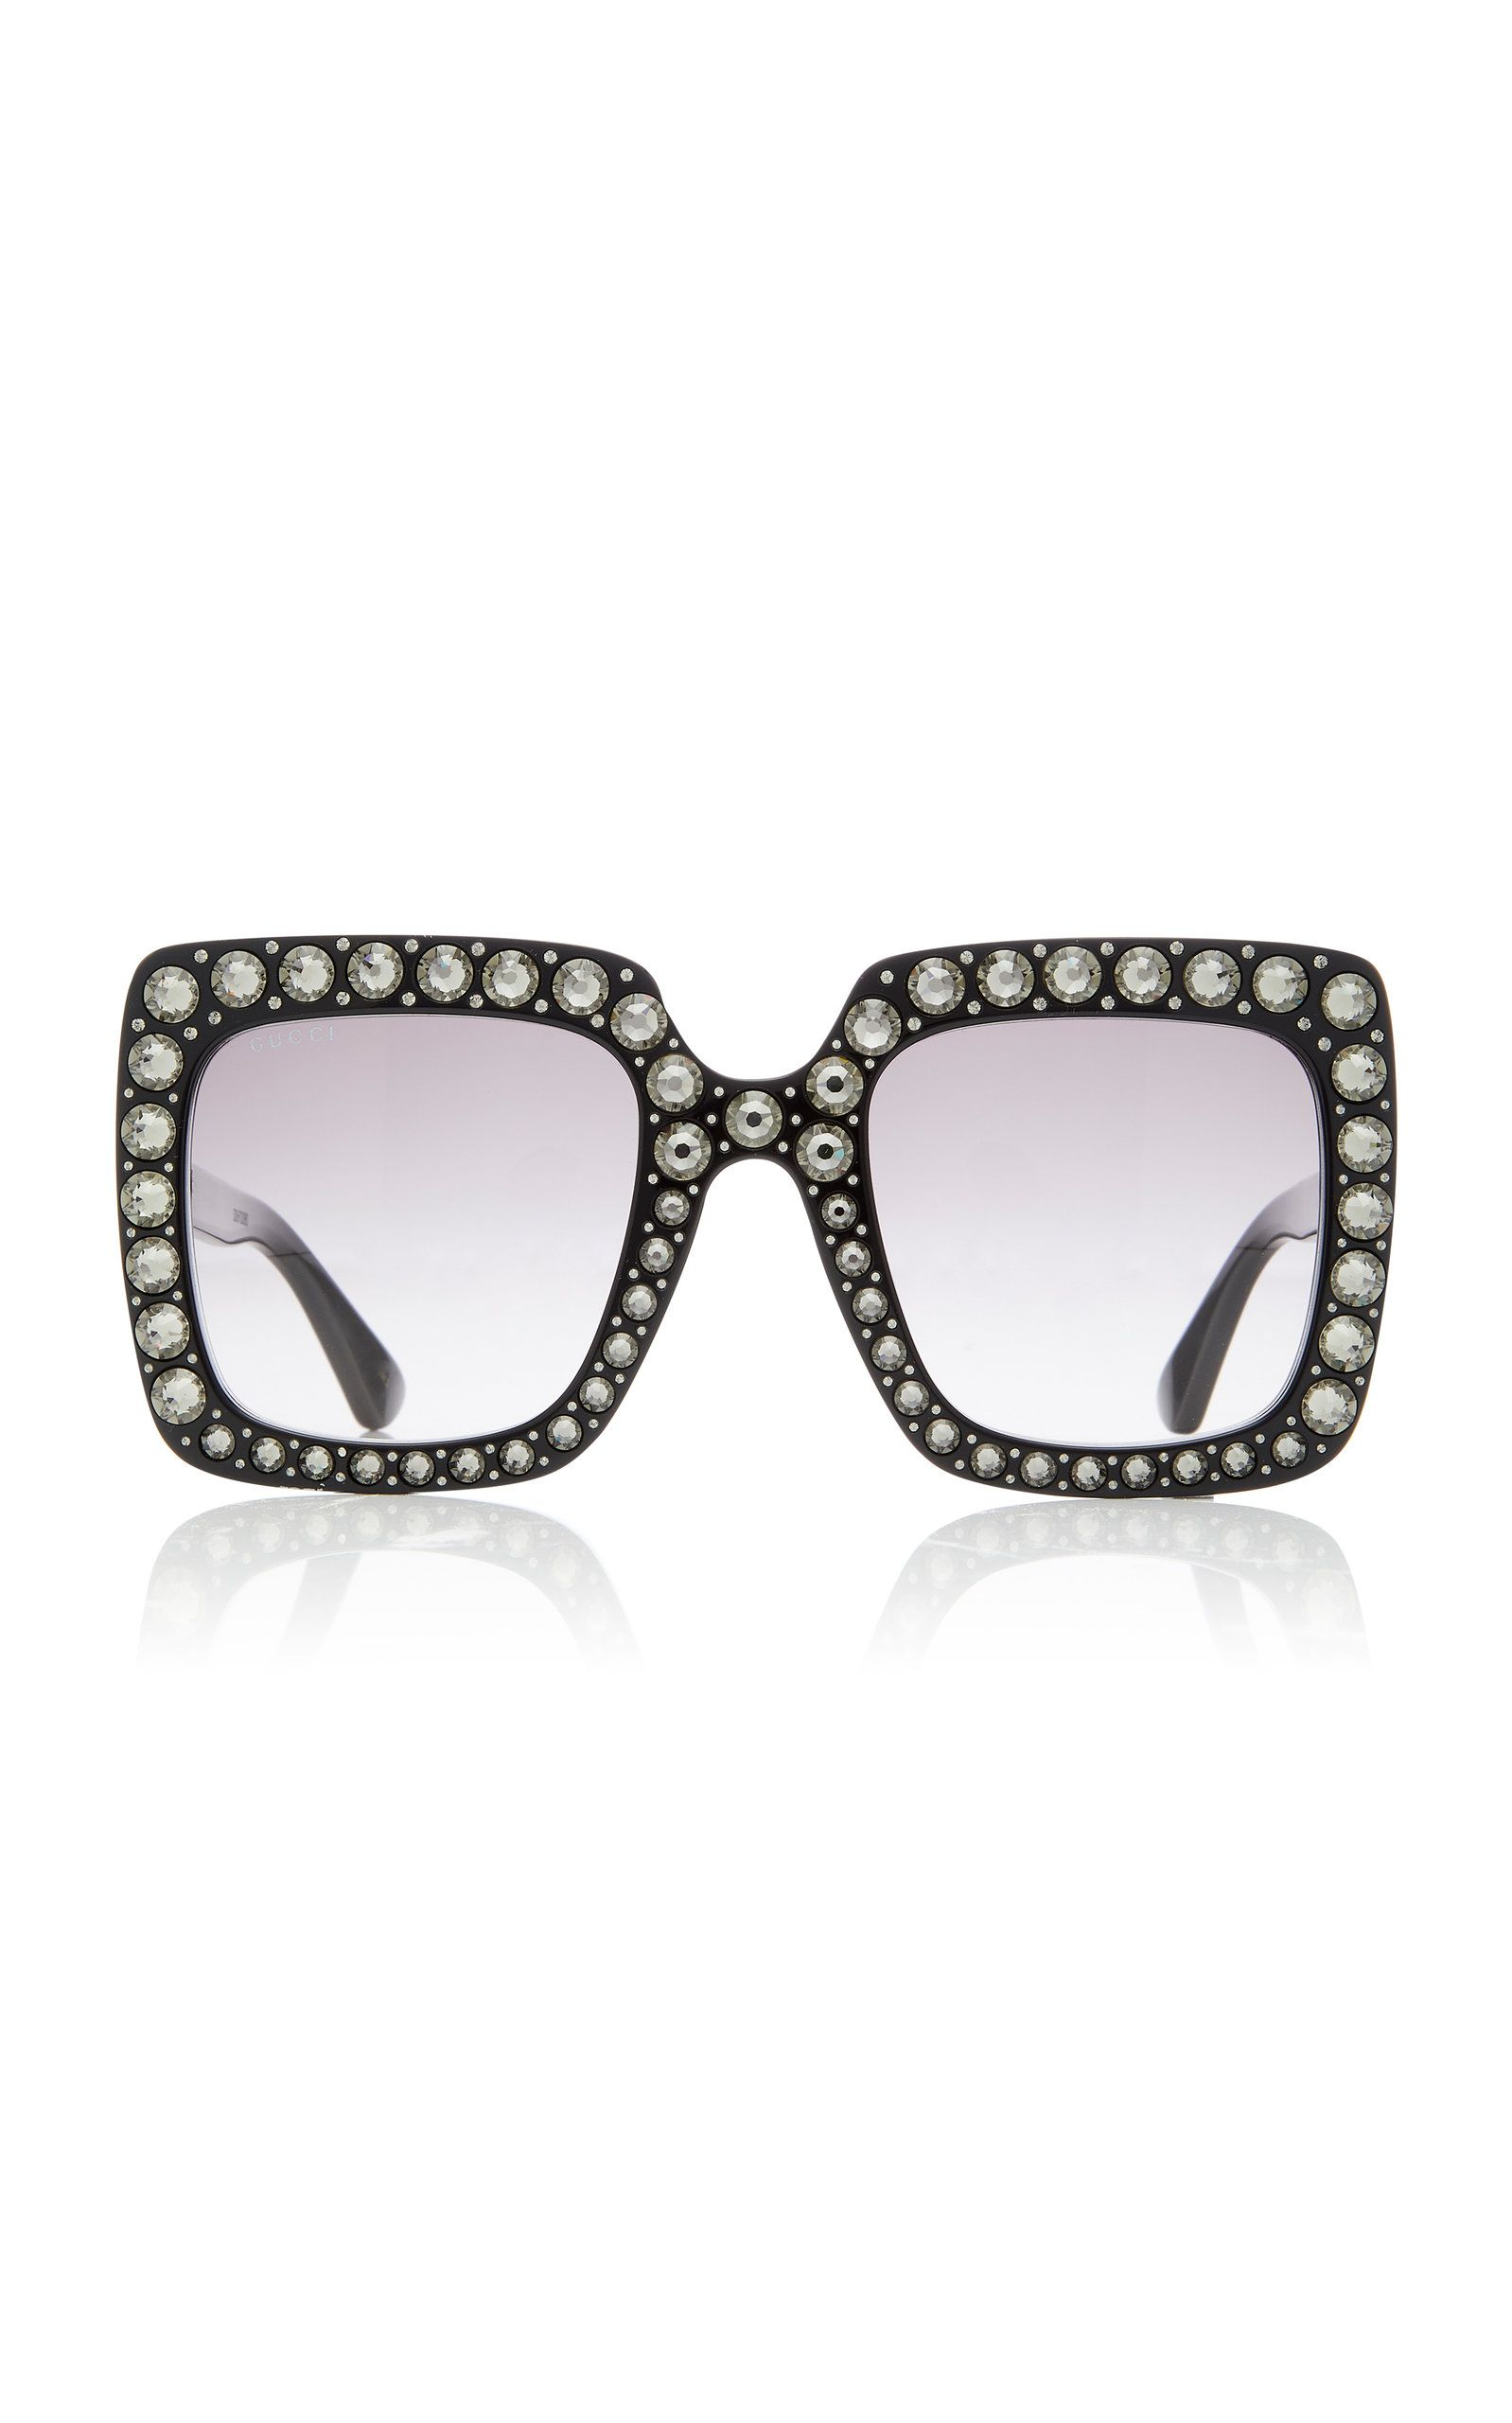 787074ba61 Gucci Crystal-Embellished Square-Frame Sunglasses in 2019 | Products ...